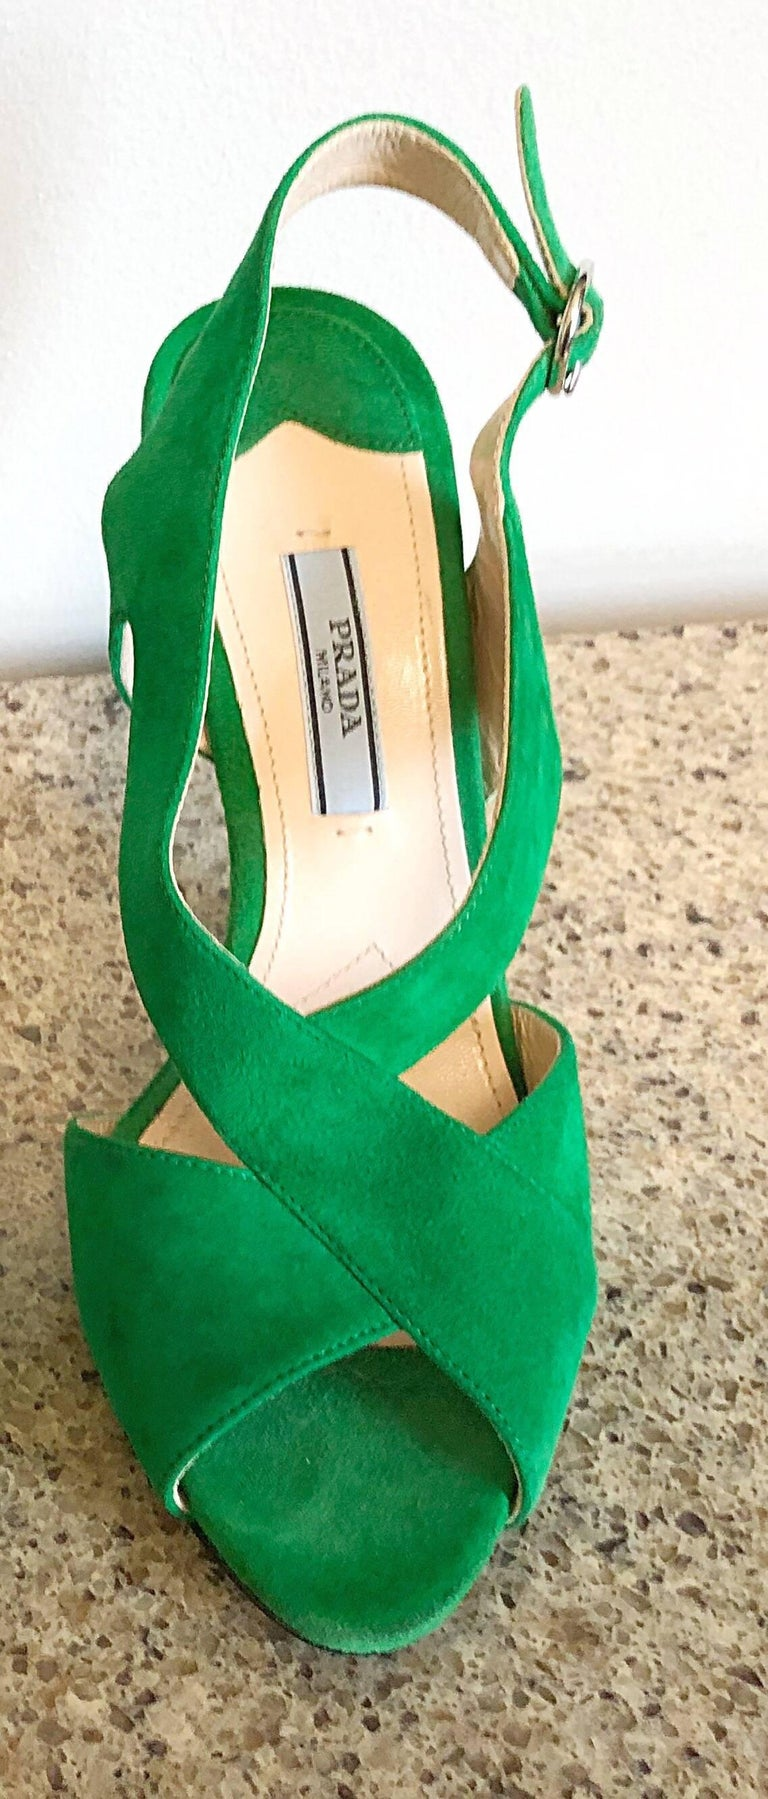 Fabulous brand new PRADA kelly green runway open toe heels! Vibrant green color on an architecturally appealing design. Adjustable strap can fit an array of ankle sizes. Extremely comfortable shoes that are easy to wear all day. The perfect pop of